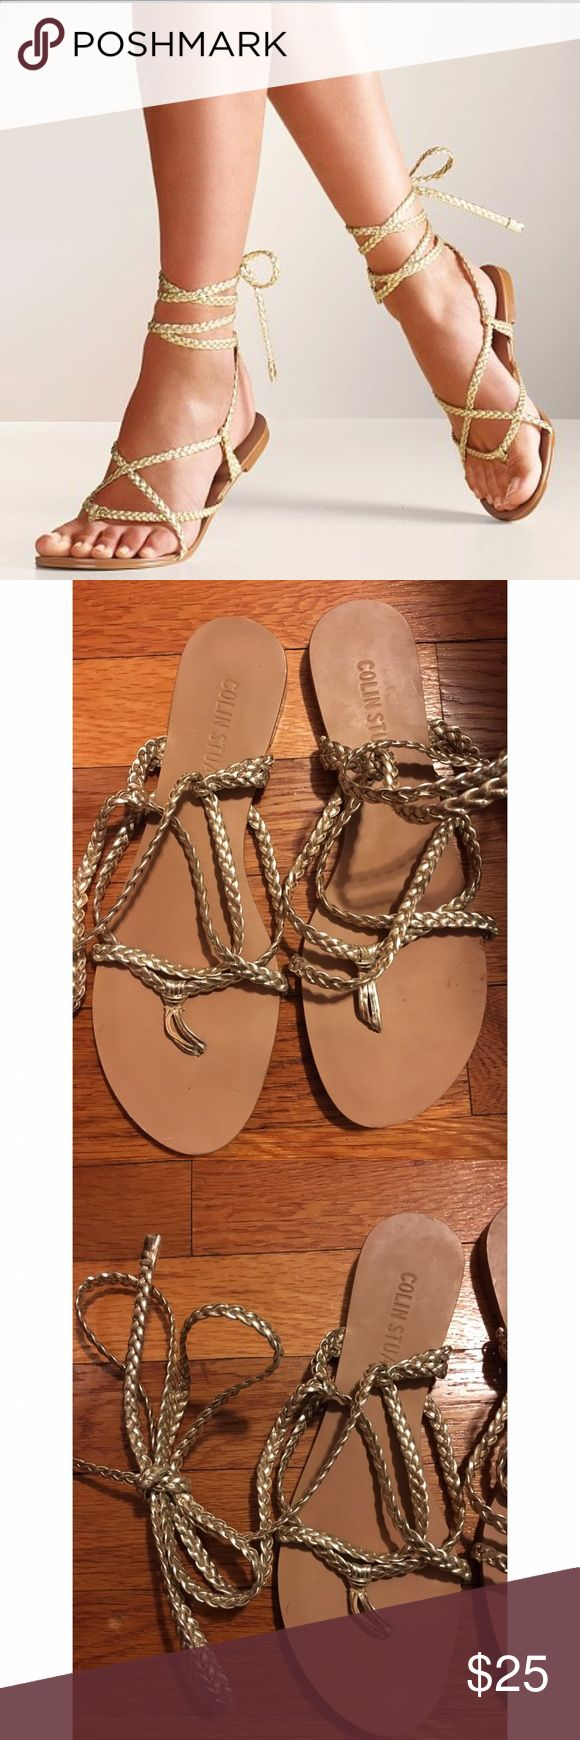 Colin Stuart Gold Braided Ankle Wrap Sandal Colin Stuart from Victoria Secret, 6.5, Gold, Braided wrap up ankle sandal, mark on inside see last picture Colin Stuart Shoes Sandals